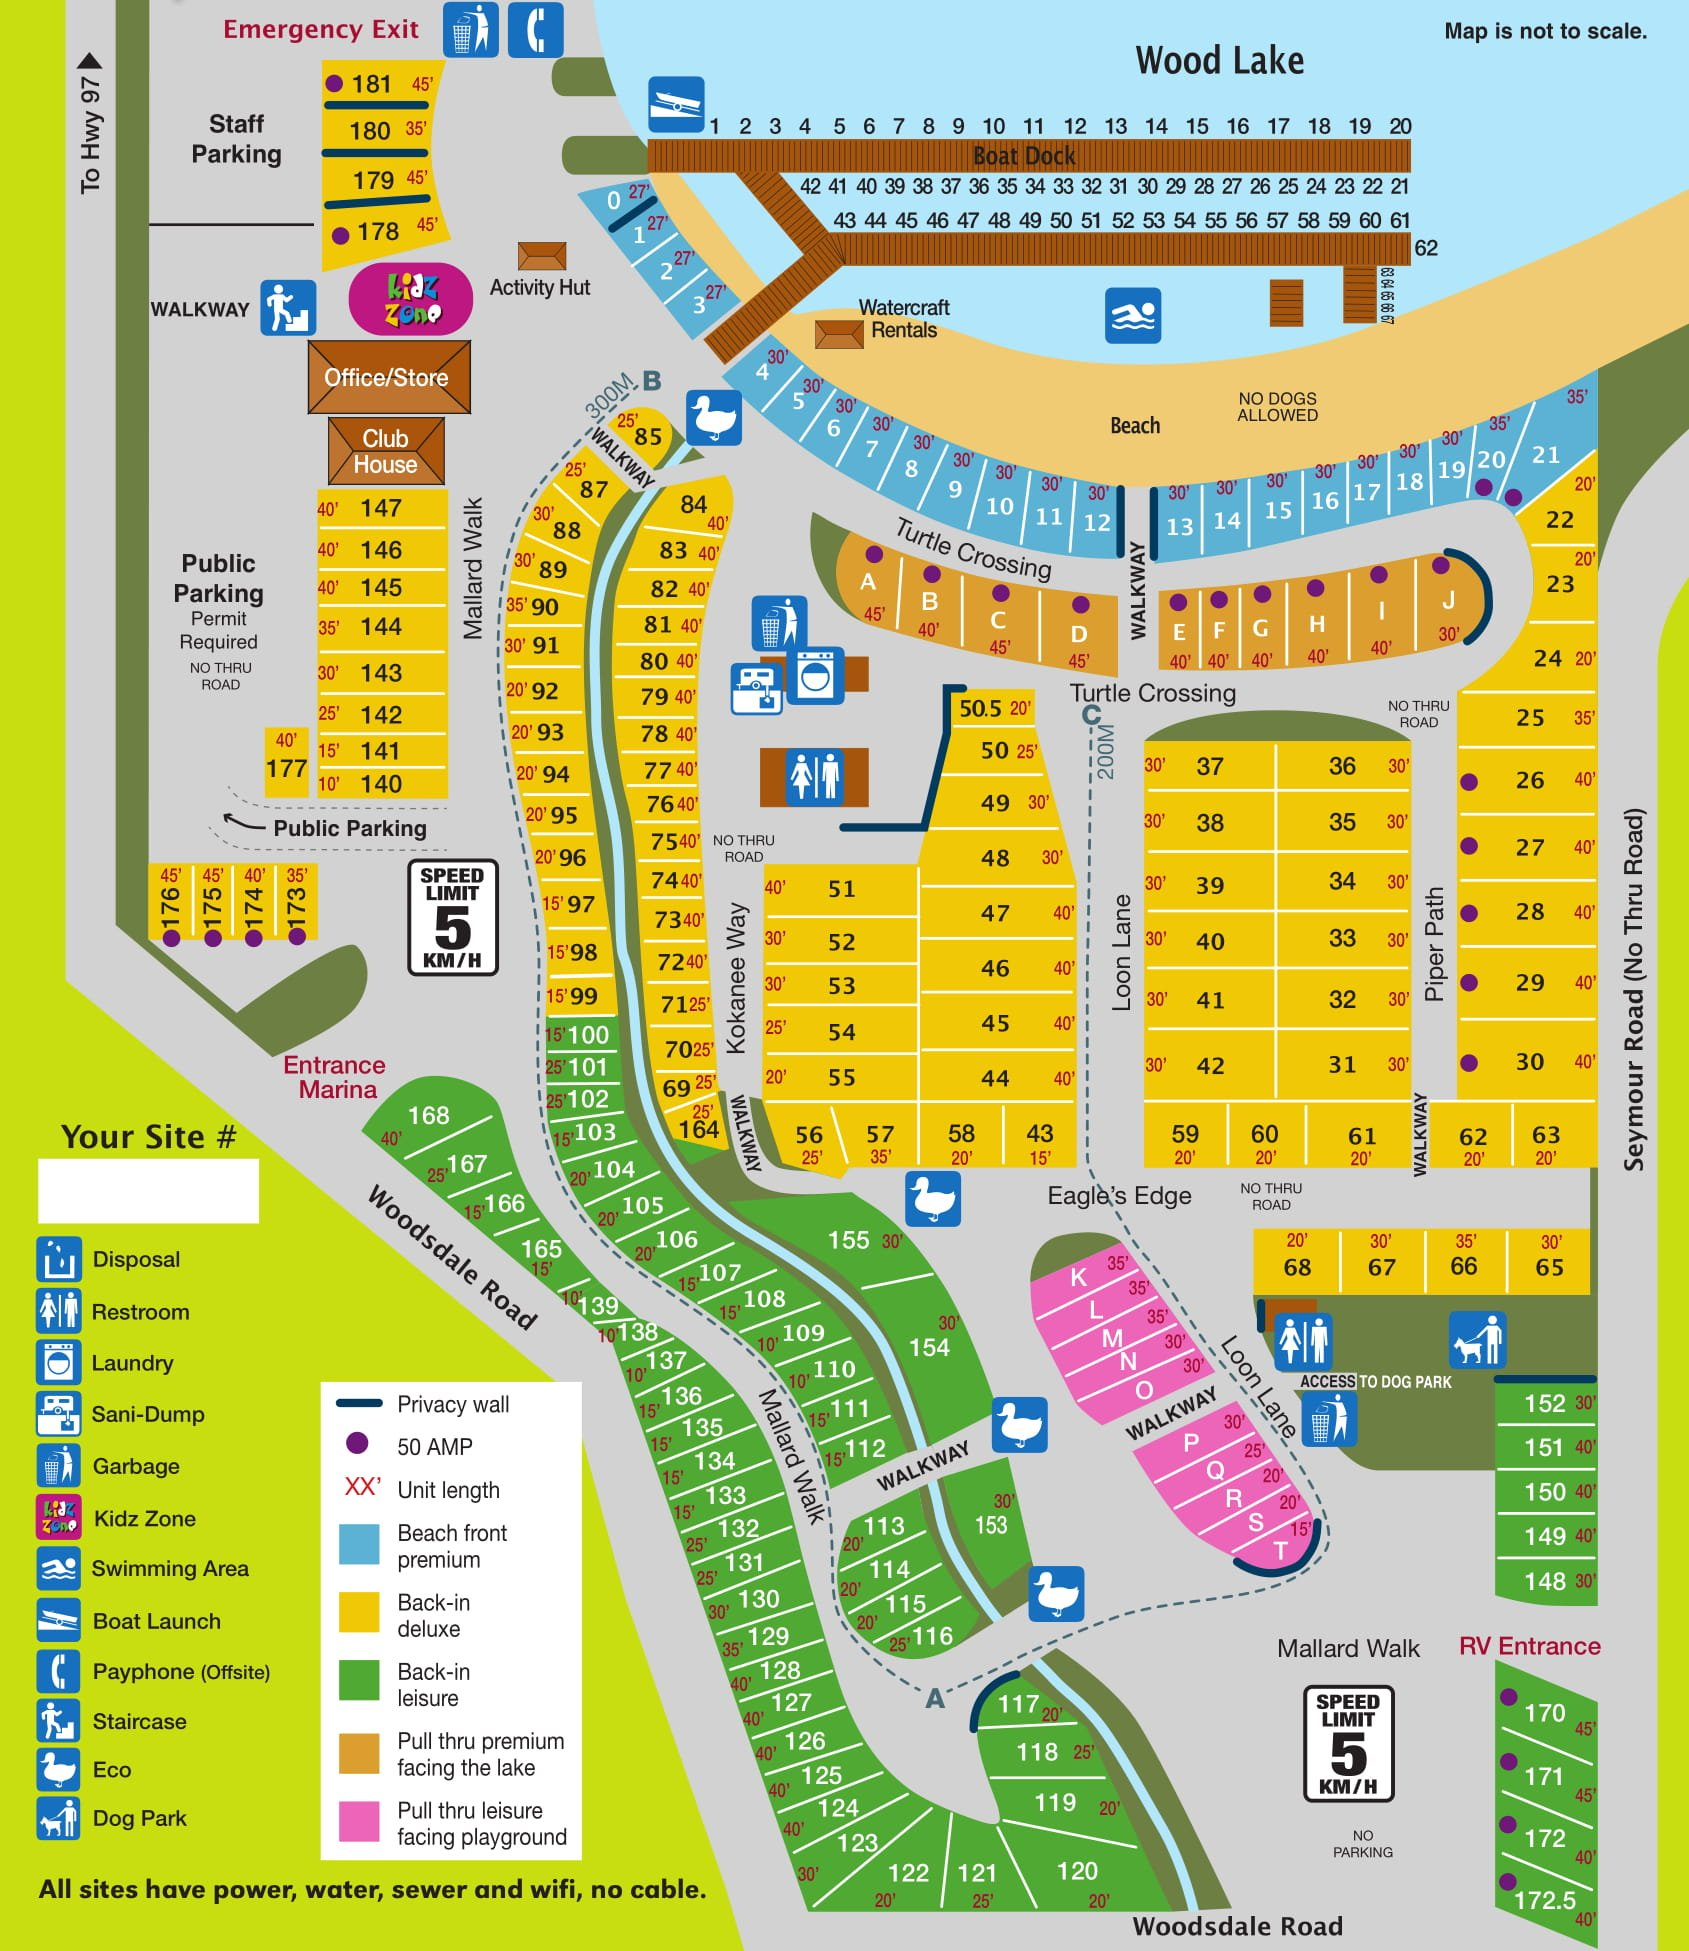 Sitemap   Wood Lake RV on content farm, service map, online map, organic search, star map, development map, life map, content map, web template, home map, search engine optimization, walmart map, sitemap index, project map, address map, code map, customer map, article spinning, search analytics, website wireframe, city map, web map, culture map, landscape map, link farm, link exchange, keyword density, google sitemaps, application map, building map, office map, road map, meta element,